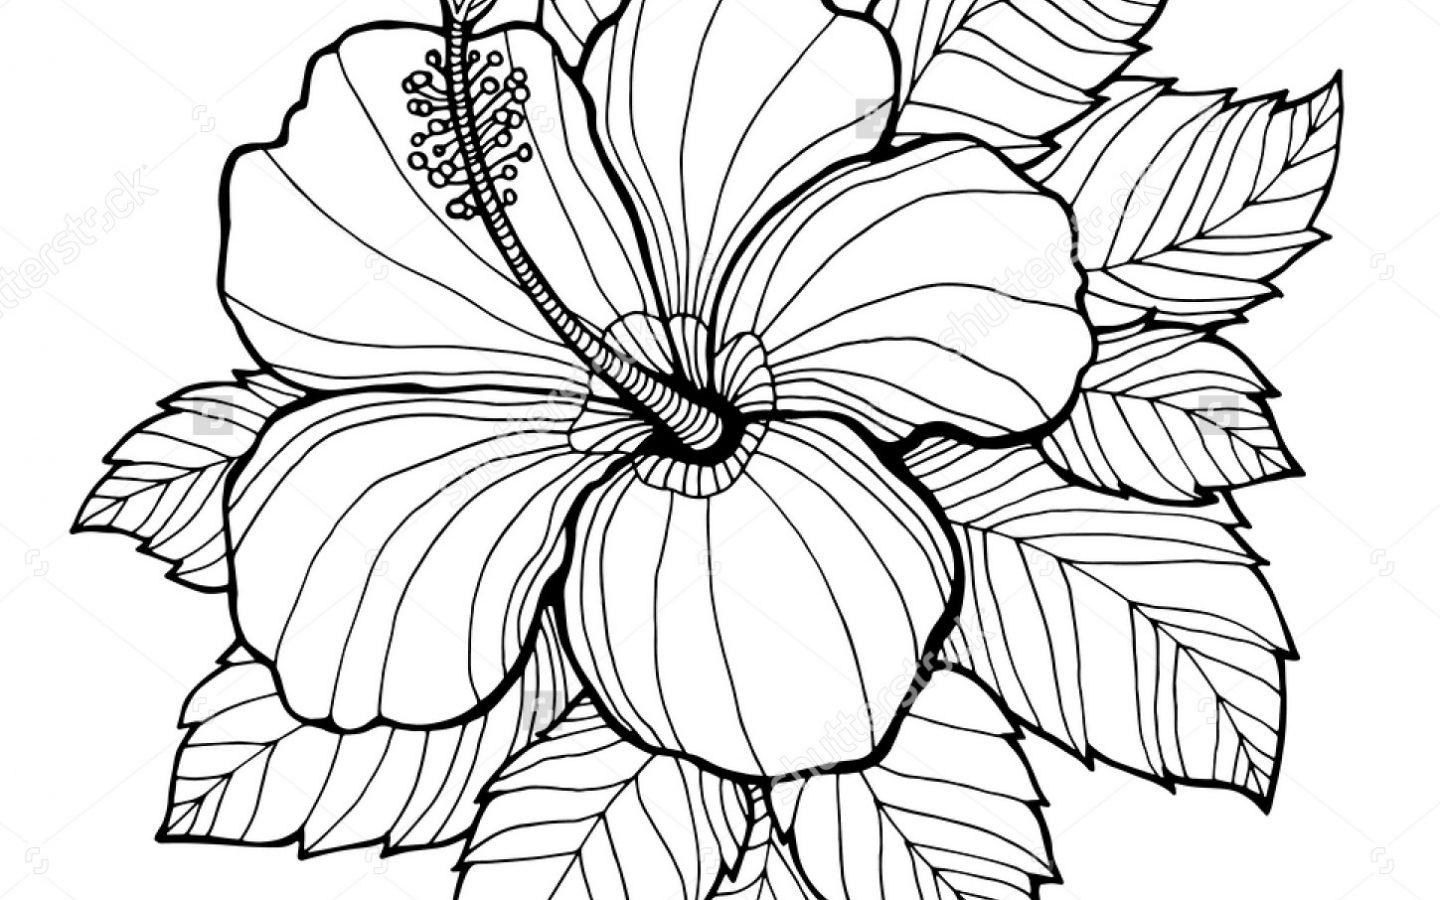 Hibiscus line drawing at getdrawings free for personal use 1440x900 hibiscus flower coloring pages download and printout page for kids izmirmasajfo